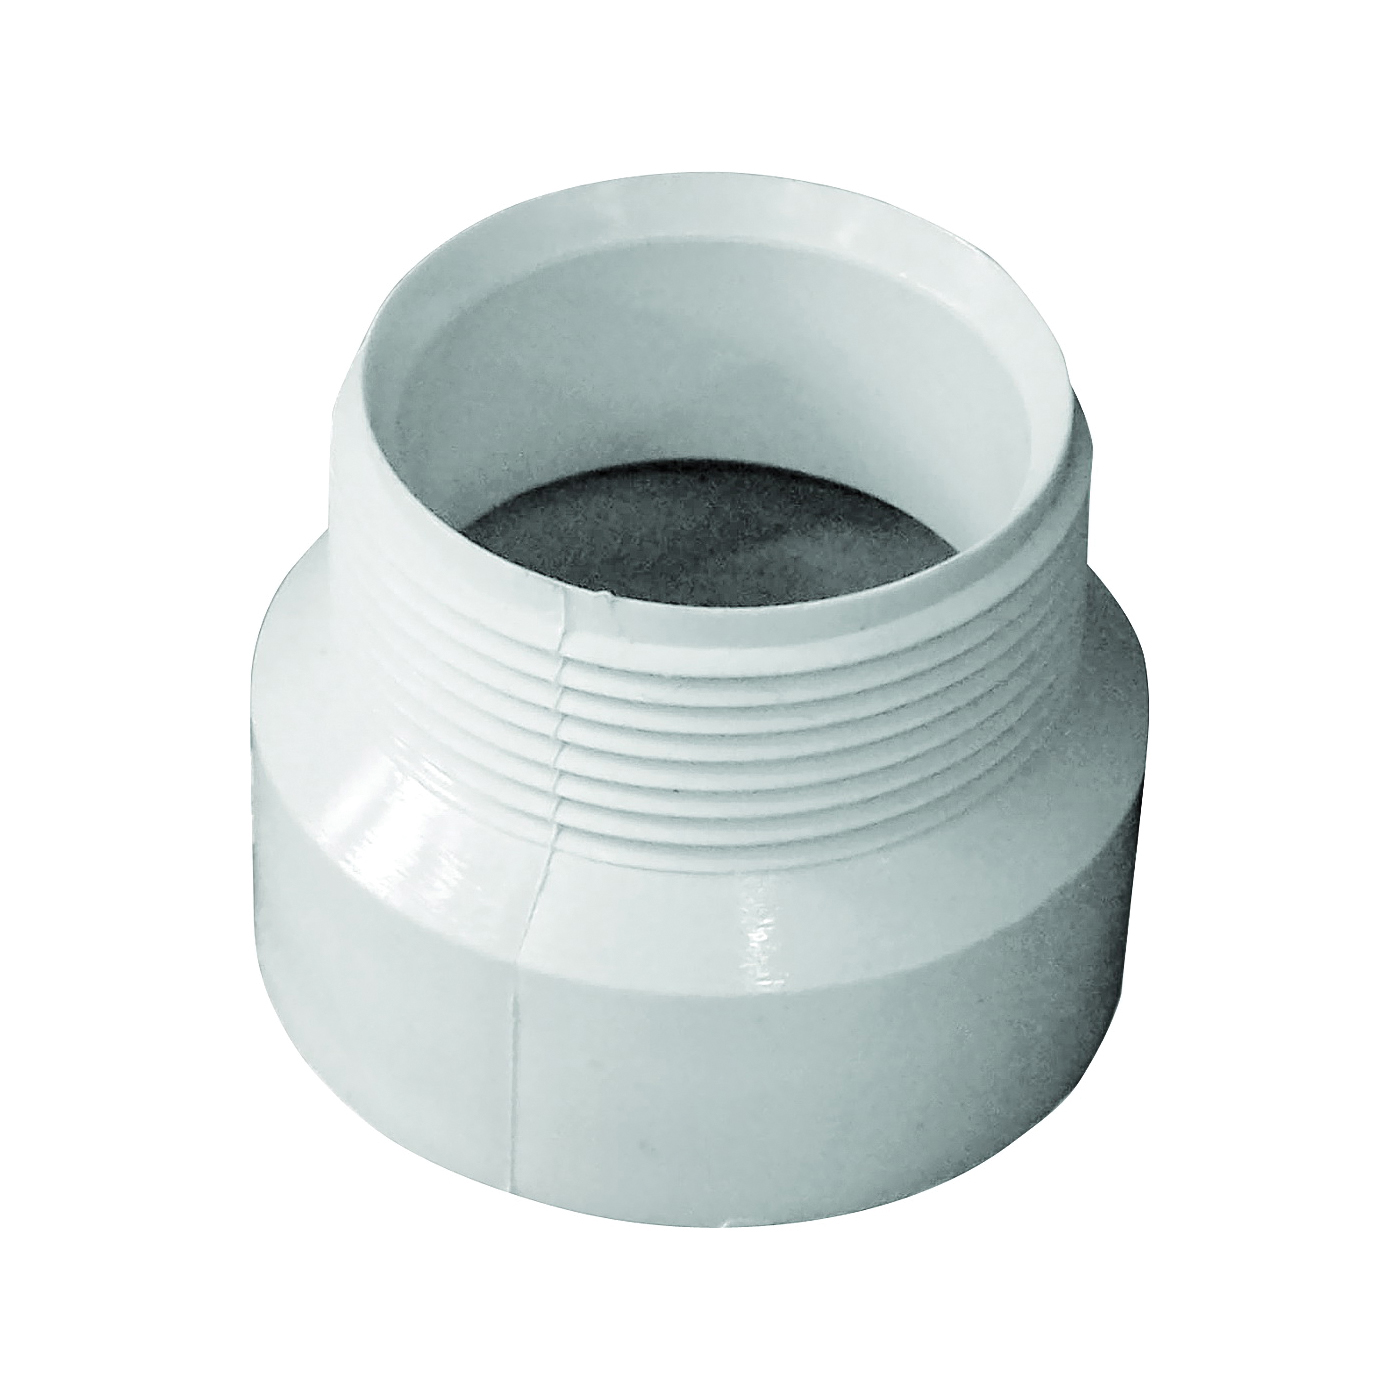 Picture of GENOVA 700 Series 70415 Pipe Adapter, 1-1/2 in Hub, 1-1/2 in MIP